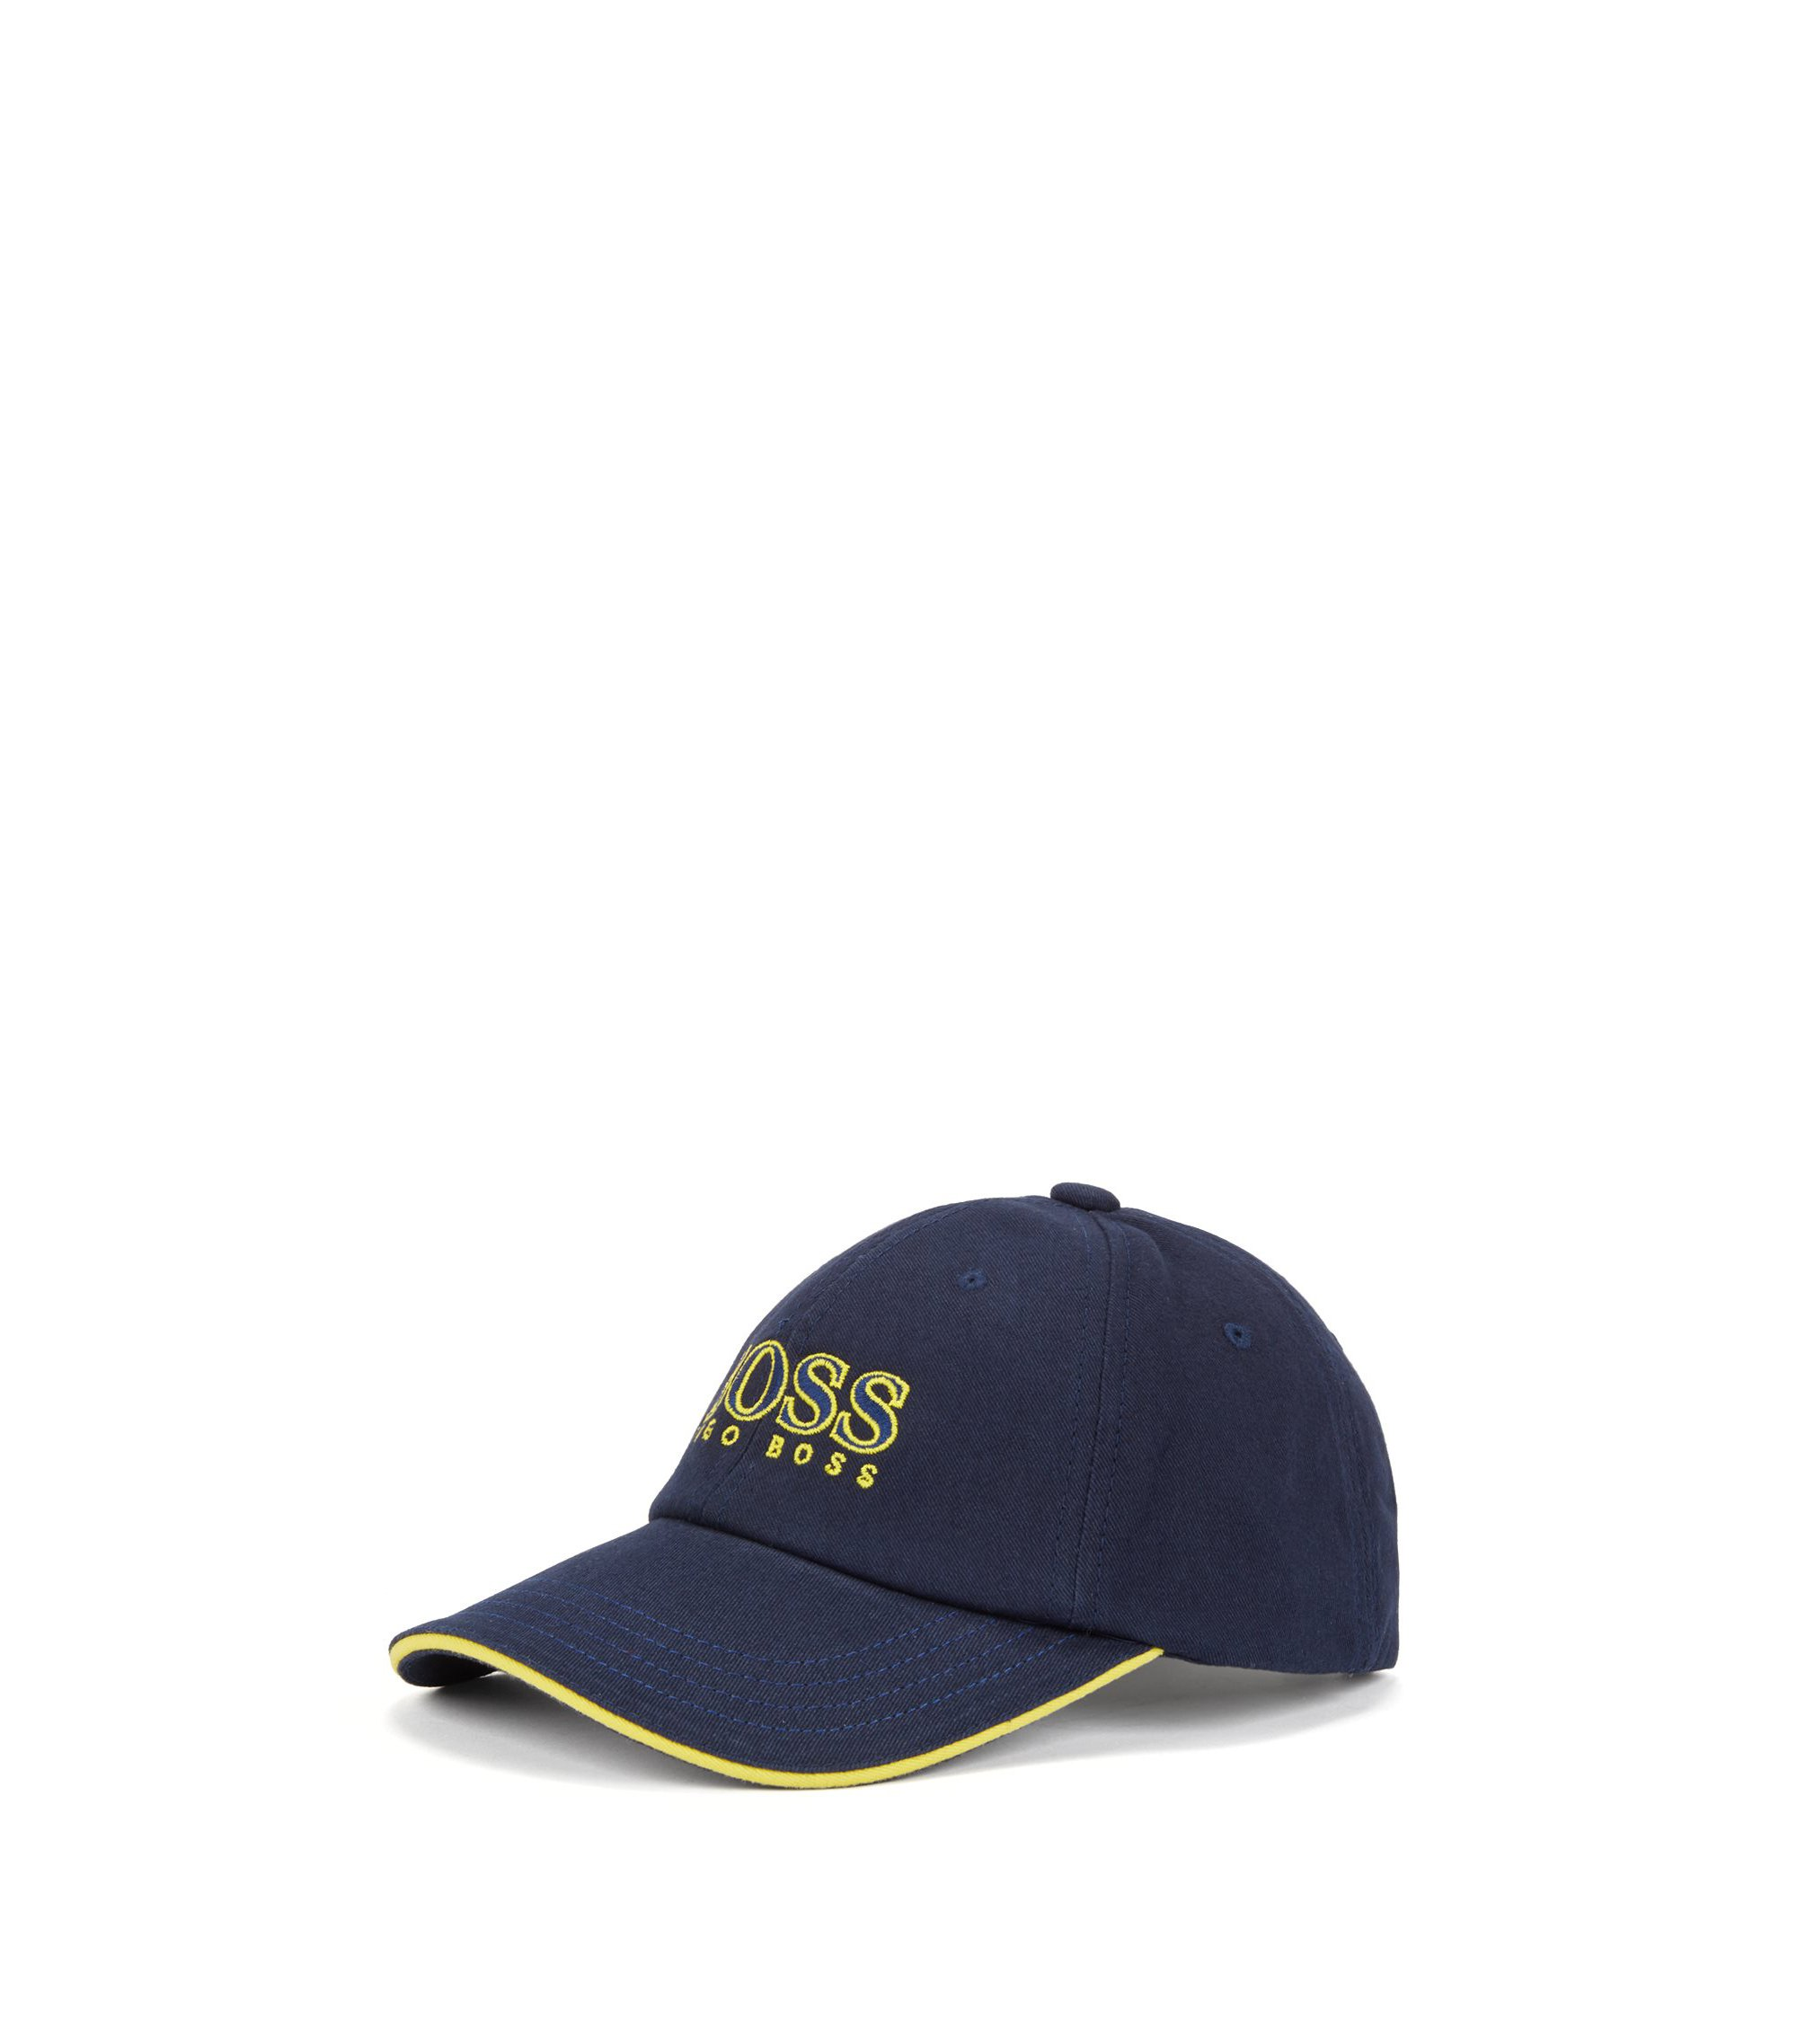 Kids' logo-embroidered baseball cap in cotton twill, Dark Blue